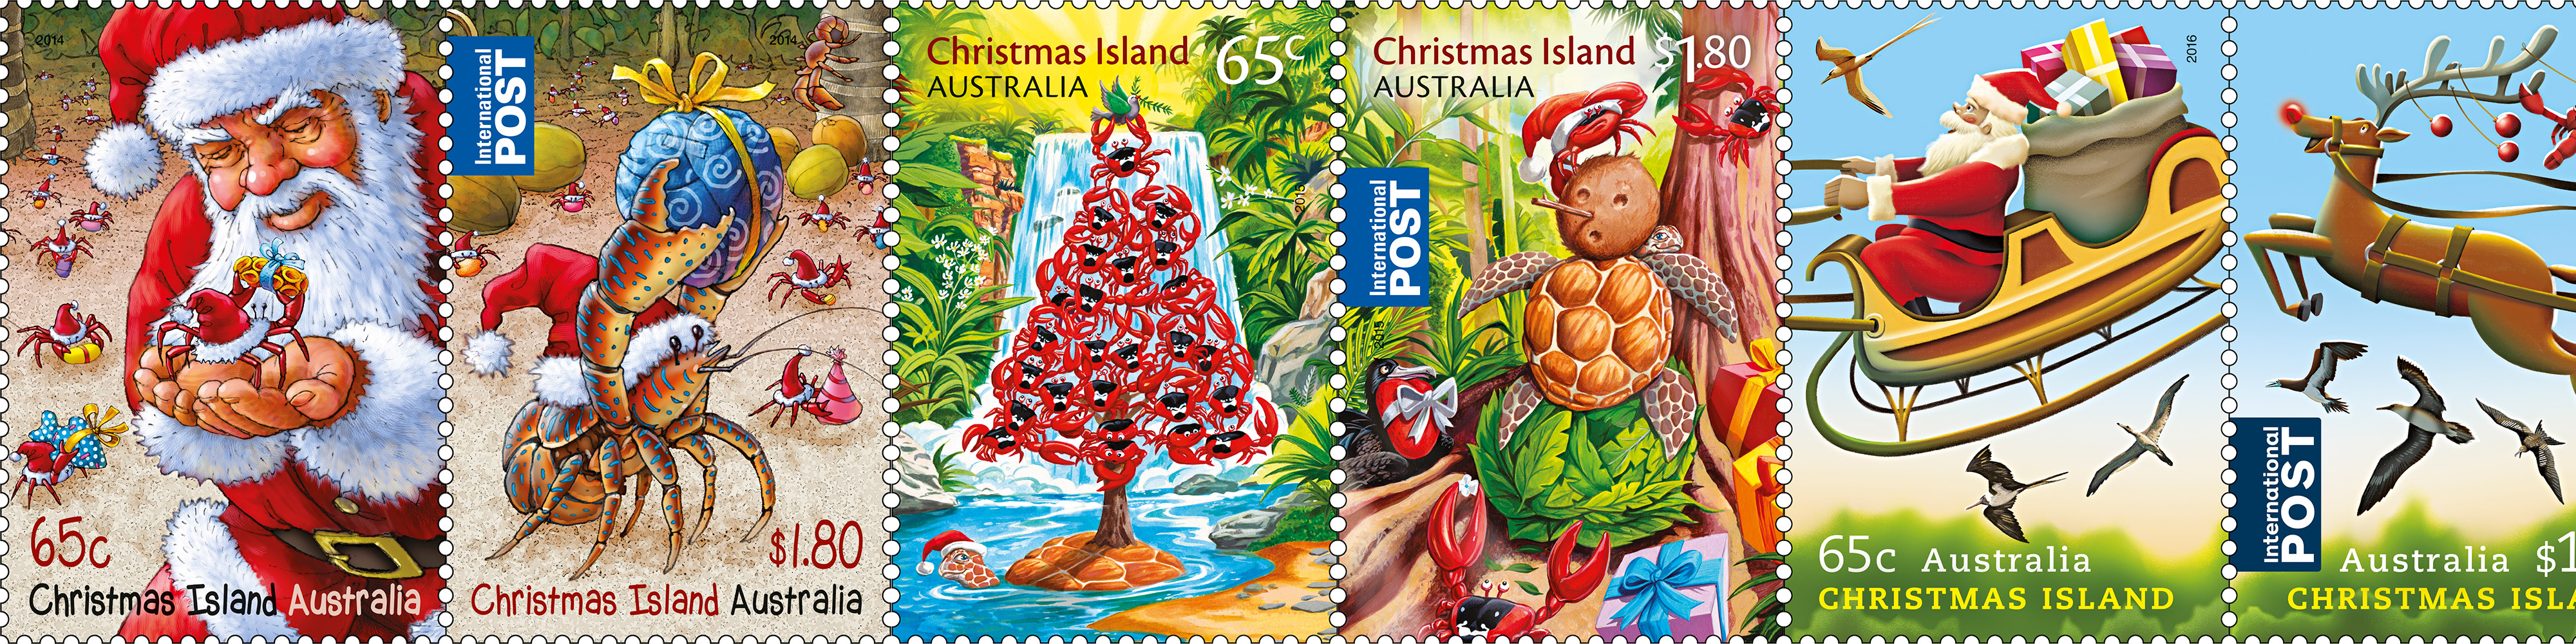 Christmas Island Australia.Christmas Island Christmas Stamps Through The Years